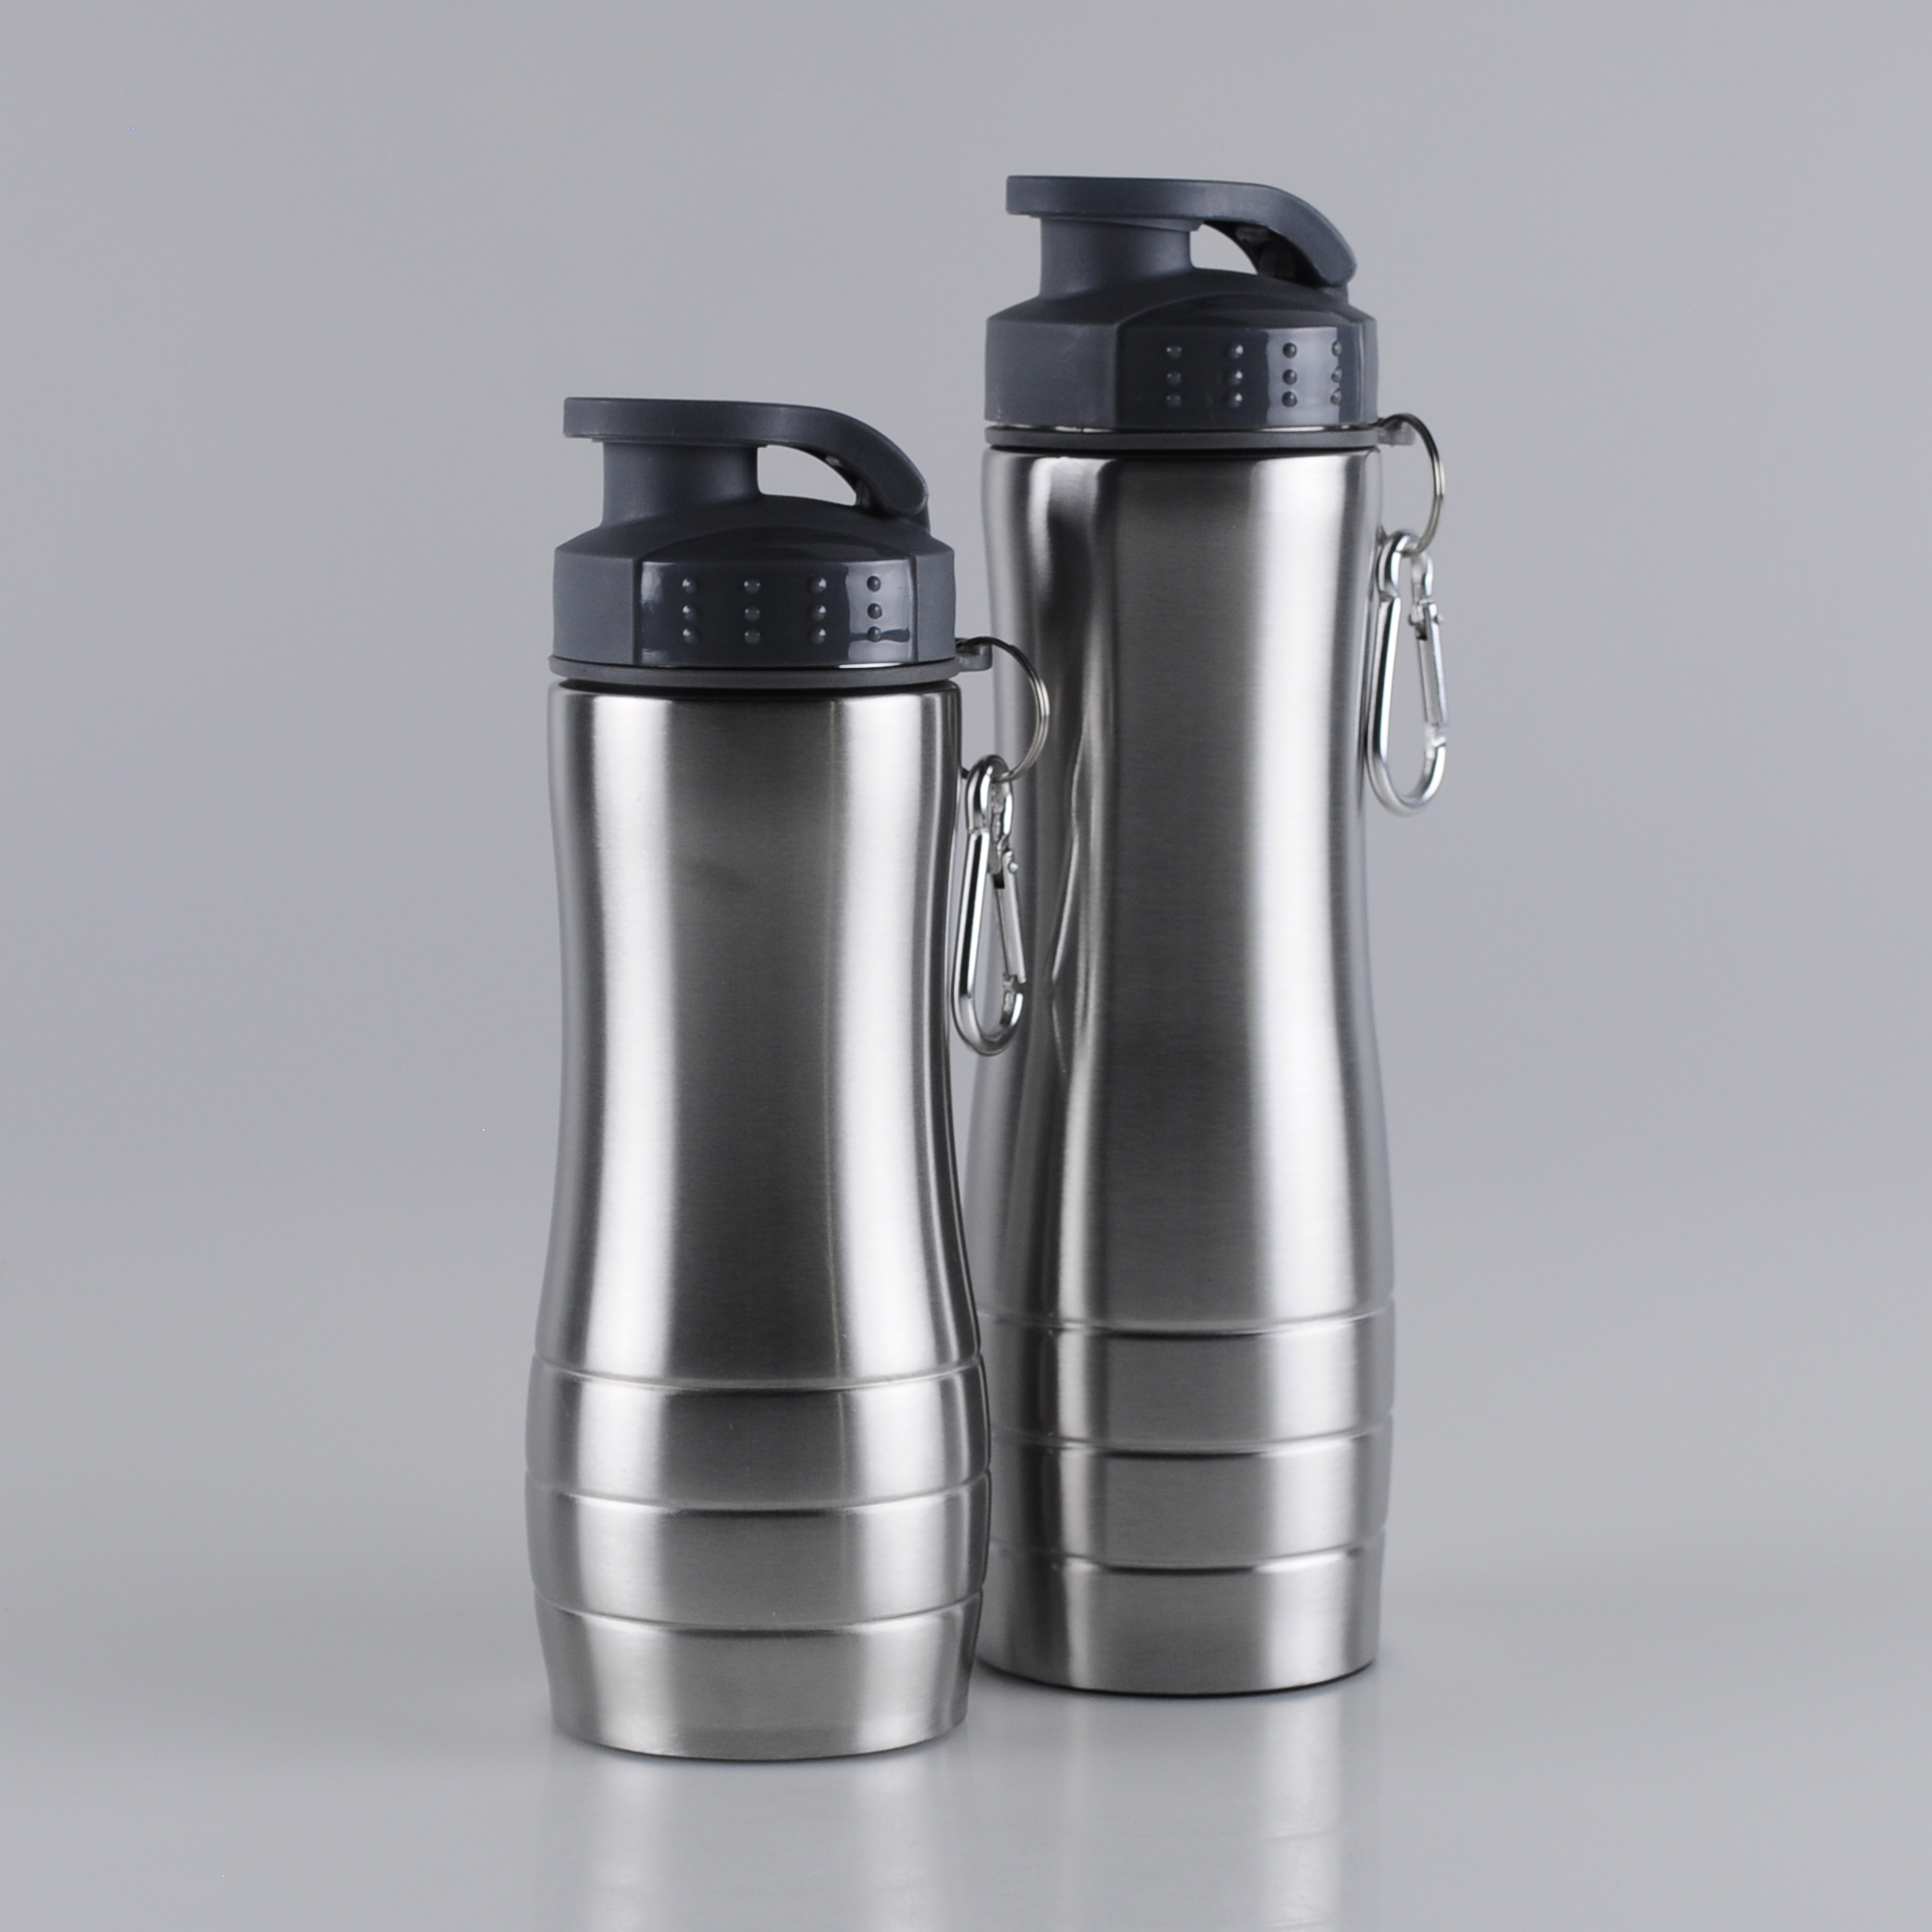 600ml-750ml-flip-top-stainless-steel-sports-bottle-with-attachable-carabiner (1)